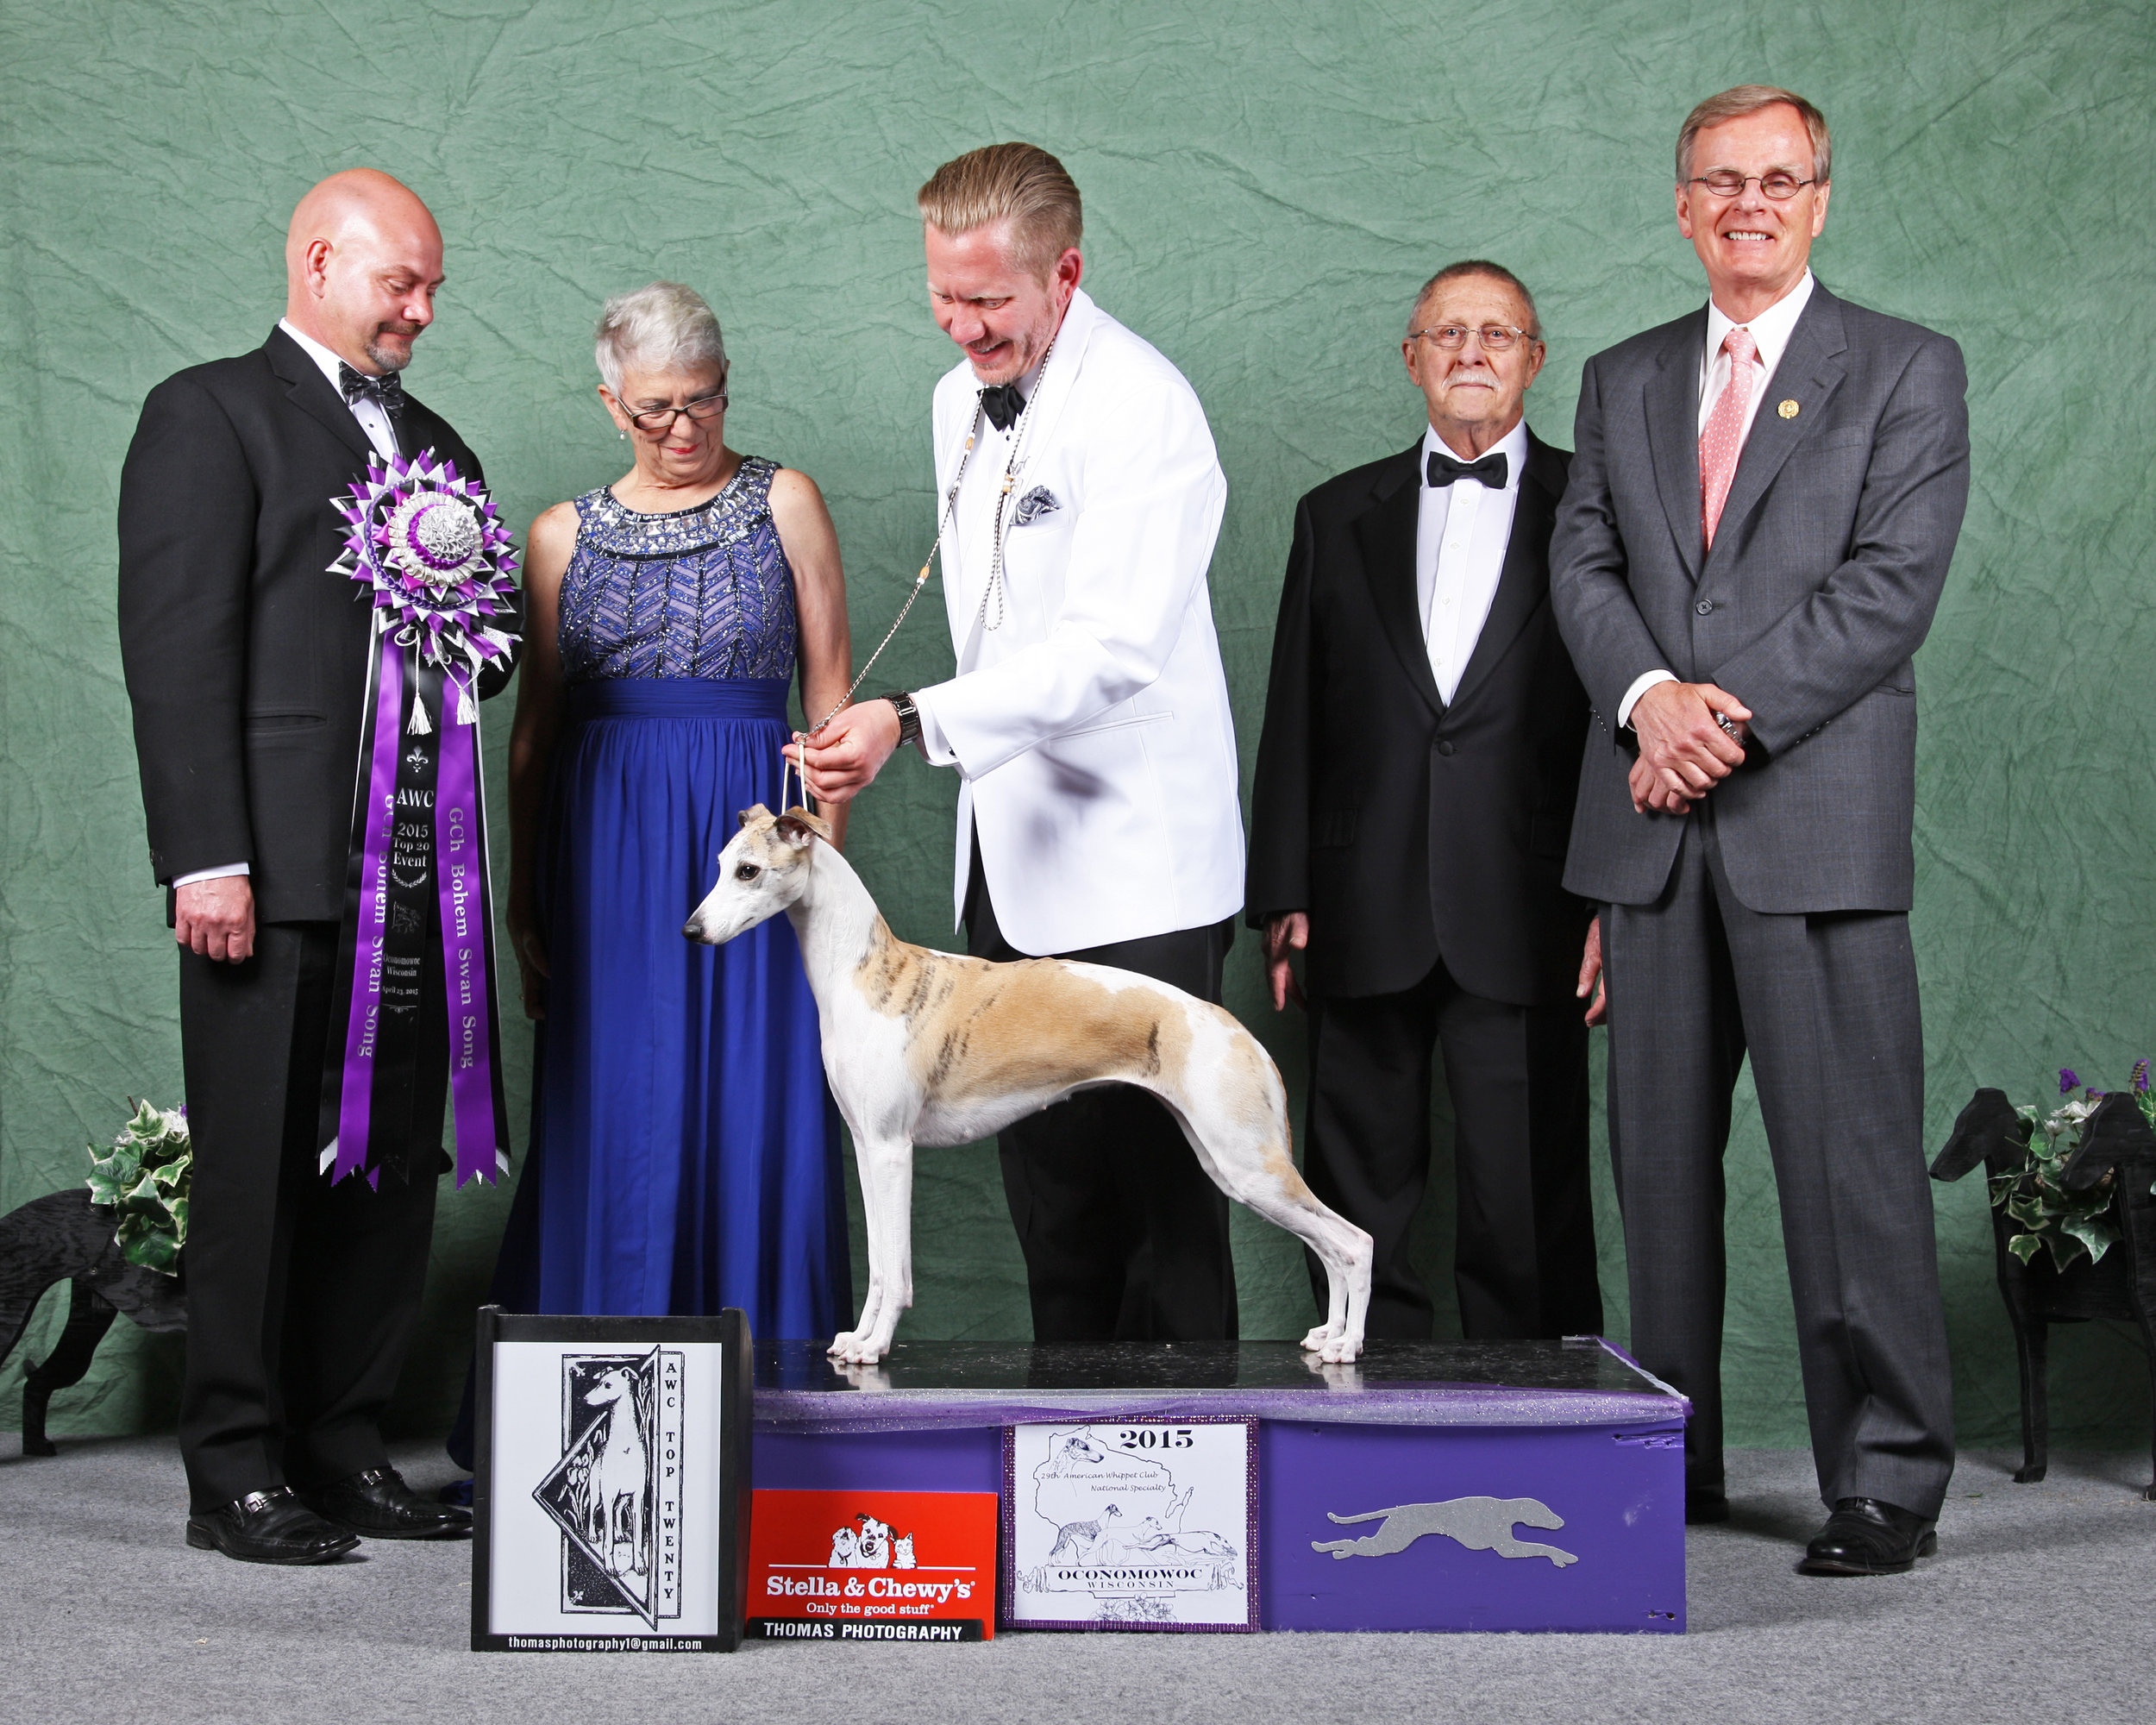 """RBIS GCh. Bohem Swan Song   """"Rosa,"""" b. 2011, by GCh. Counterpoint Painted by Bohem, SC x GCh. Charlamar Sashays In White Linen  """"Rosa"""" had a brilliant early career, with several Group wins and Res. BIS when it was interrupted as she contracted cancer. Under the loving care of her owner Rosa is now doing well but will not be shown again or bred from.  Bred by Bohem  Owned by Scot Northern & Bohem"""